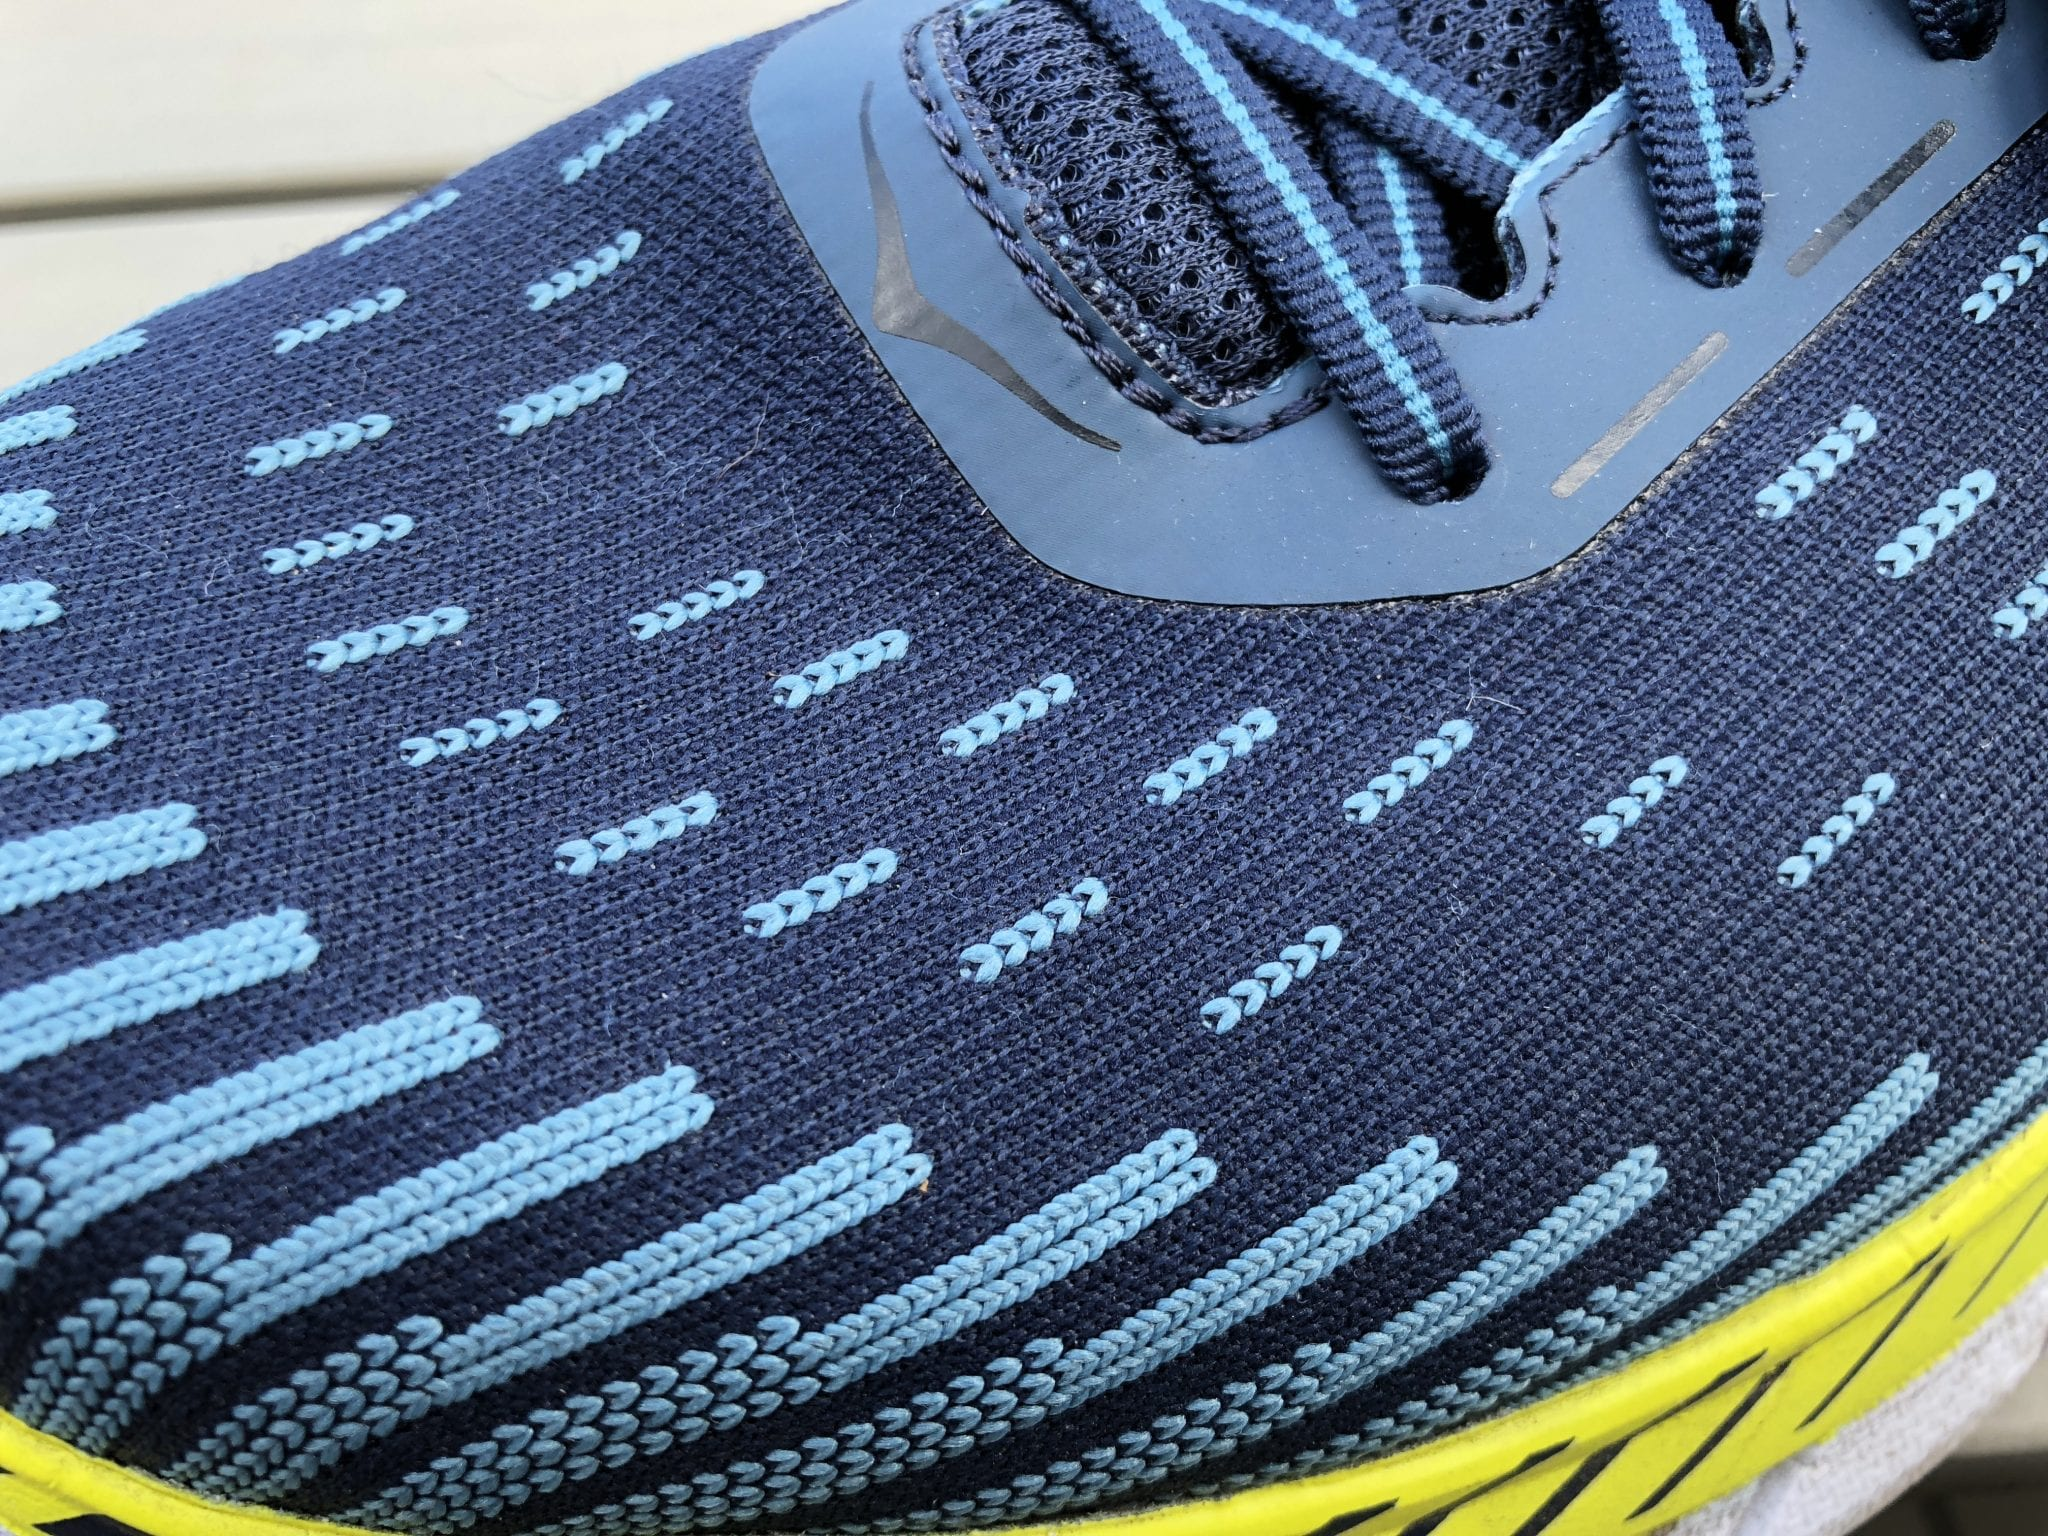 HokaOneOne Clifton 5 Knit 5